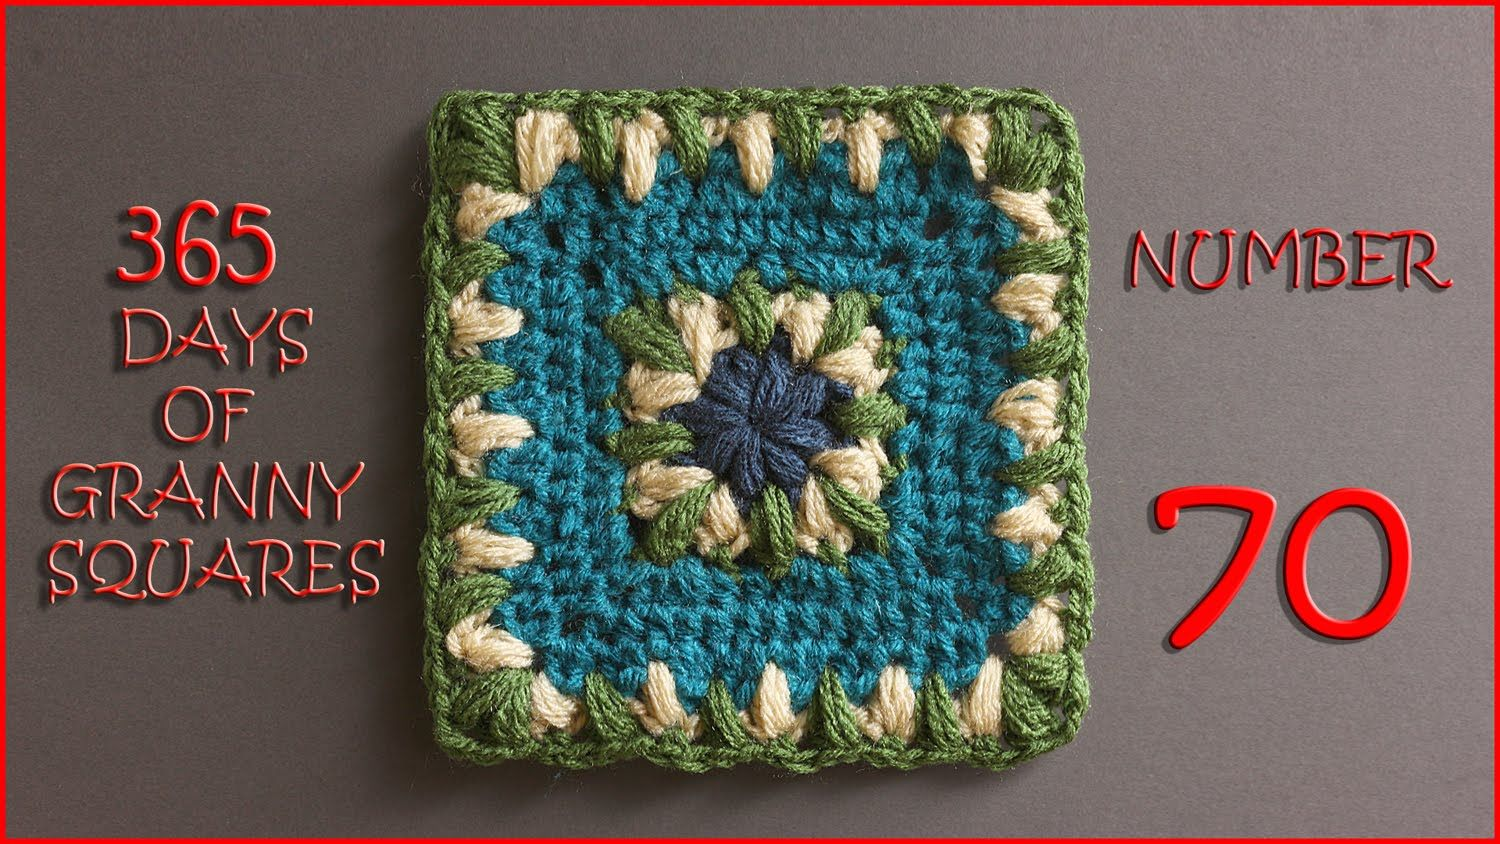 365 Days of Granny Squares Number 70 | 365 Days of Granny Squares ...